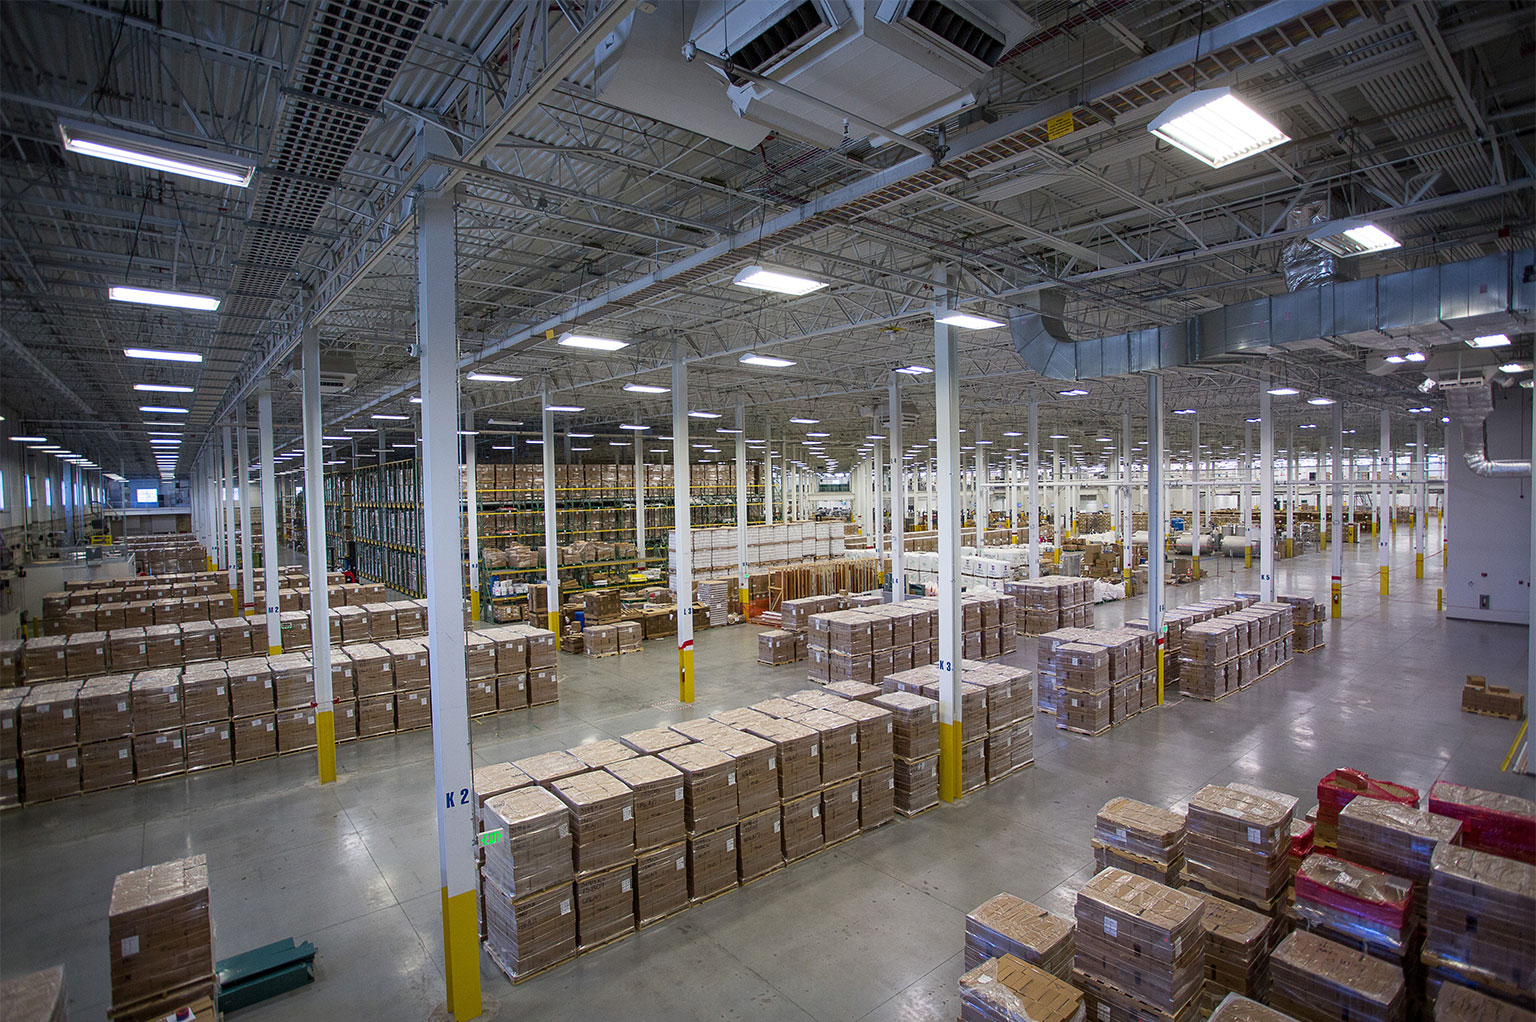 Photo of an organized warehouse